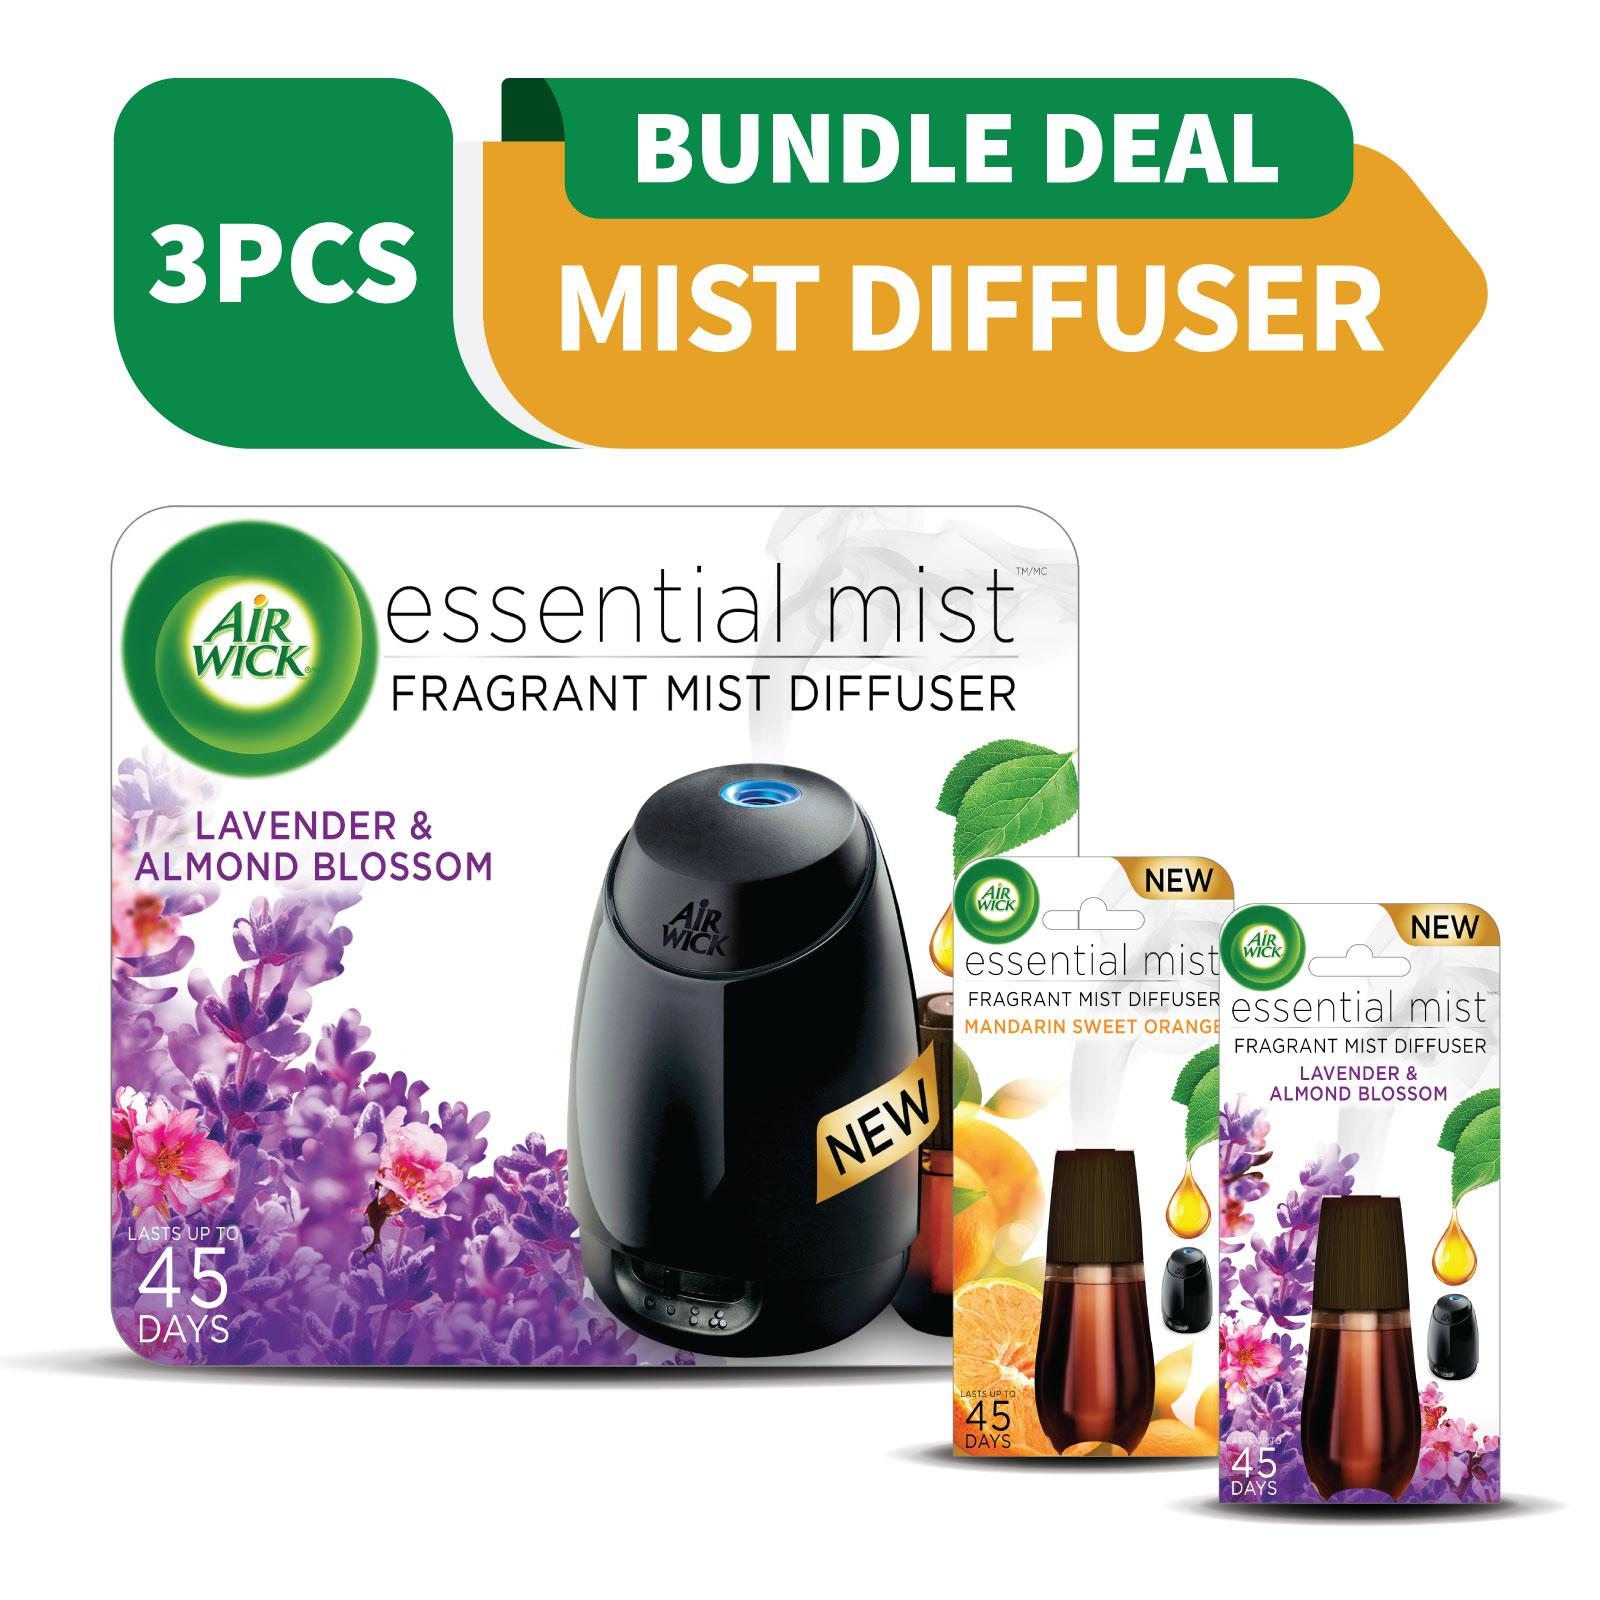 Air Wick Essential Starter + 2x Refills Packs